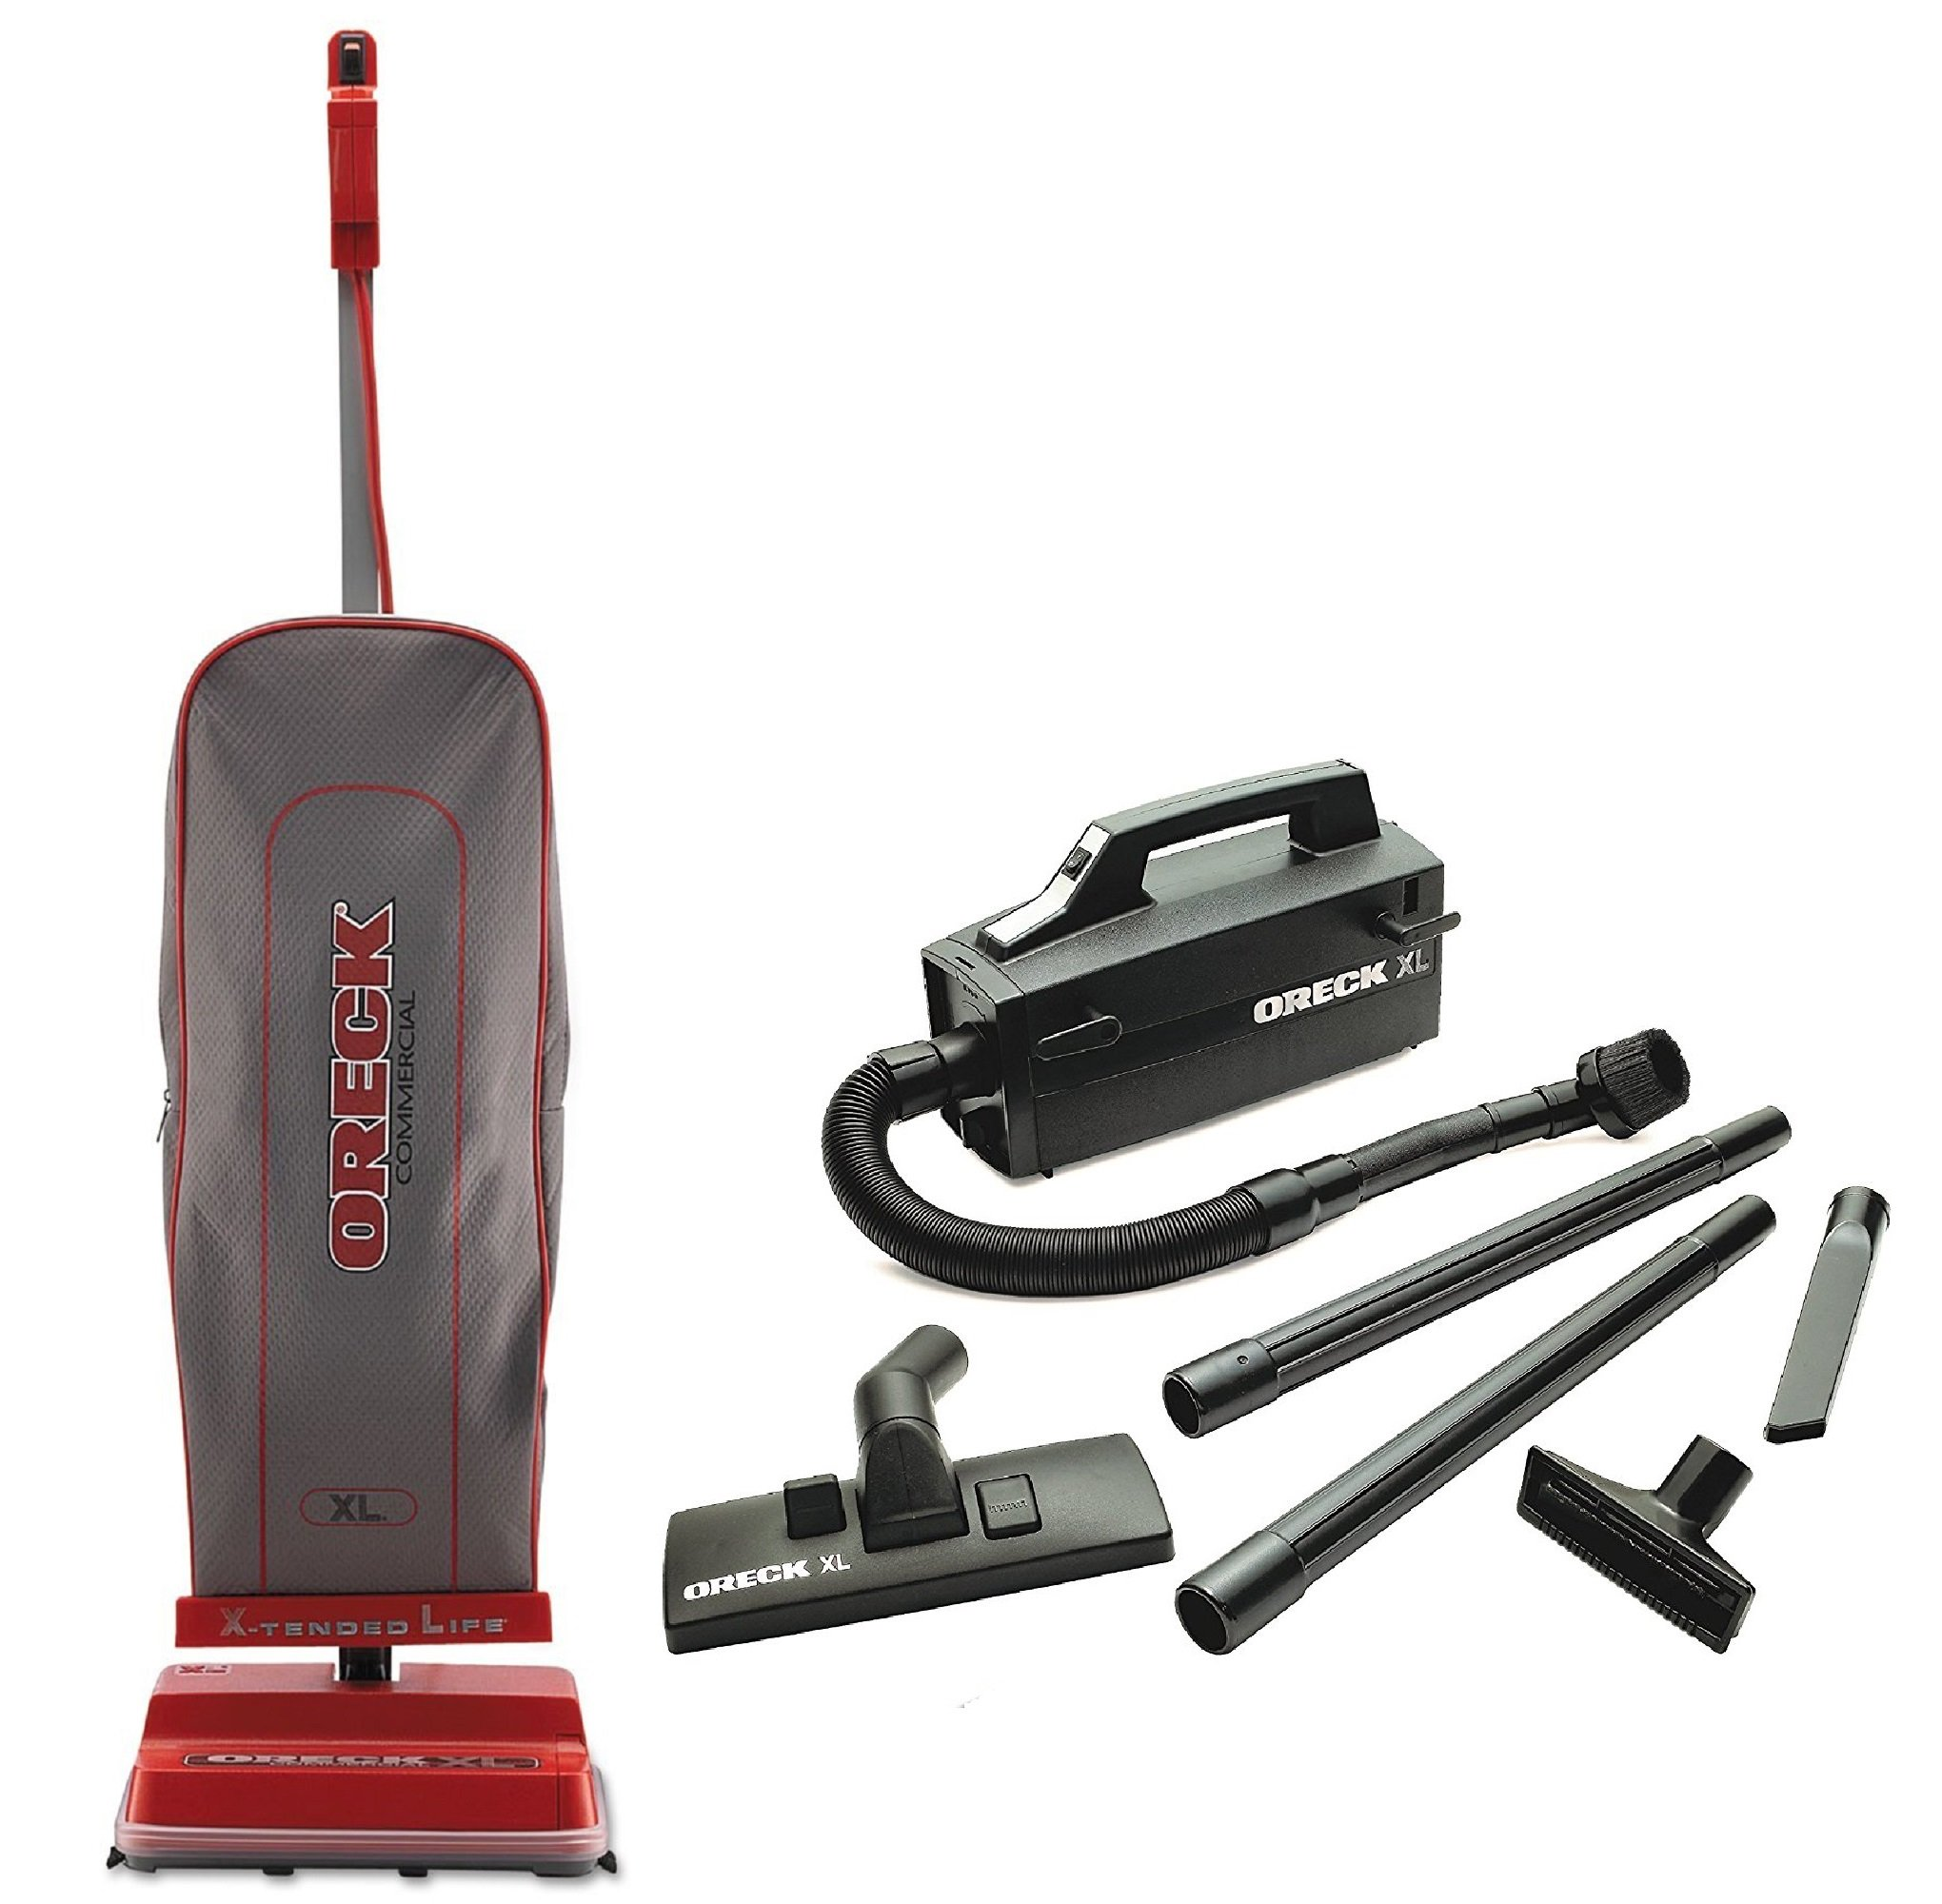 Oreck Commercial U2000R-1 120 V Red/Gray Upright Vacuum Bundle with Oreck Super Deluxe Compact Vac - BB880AD